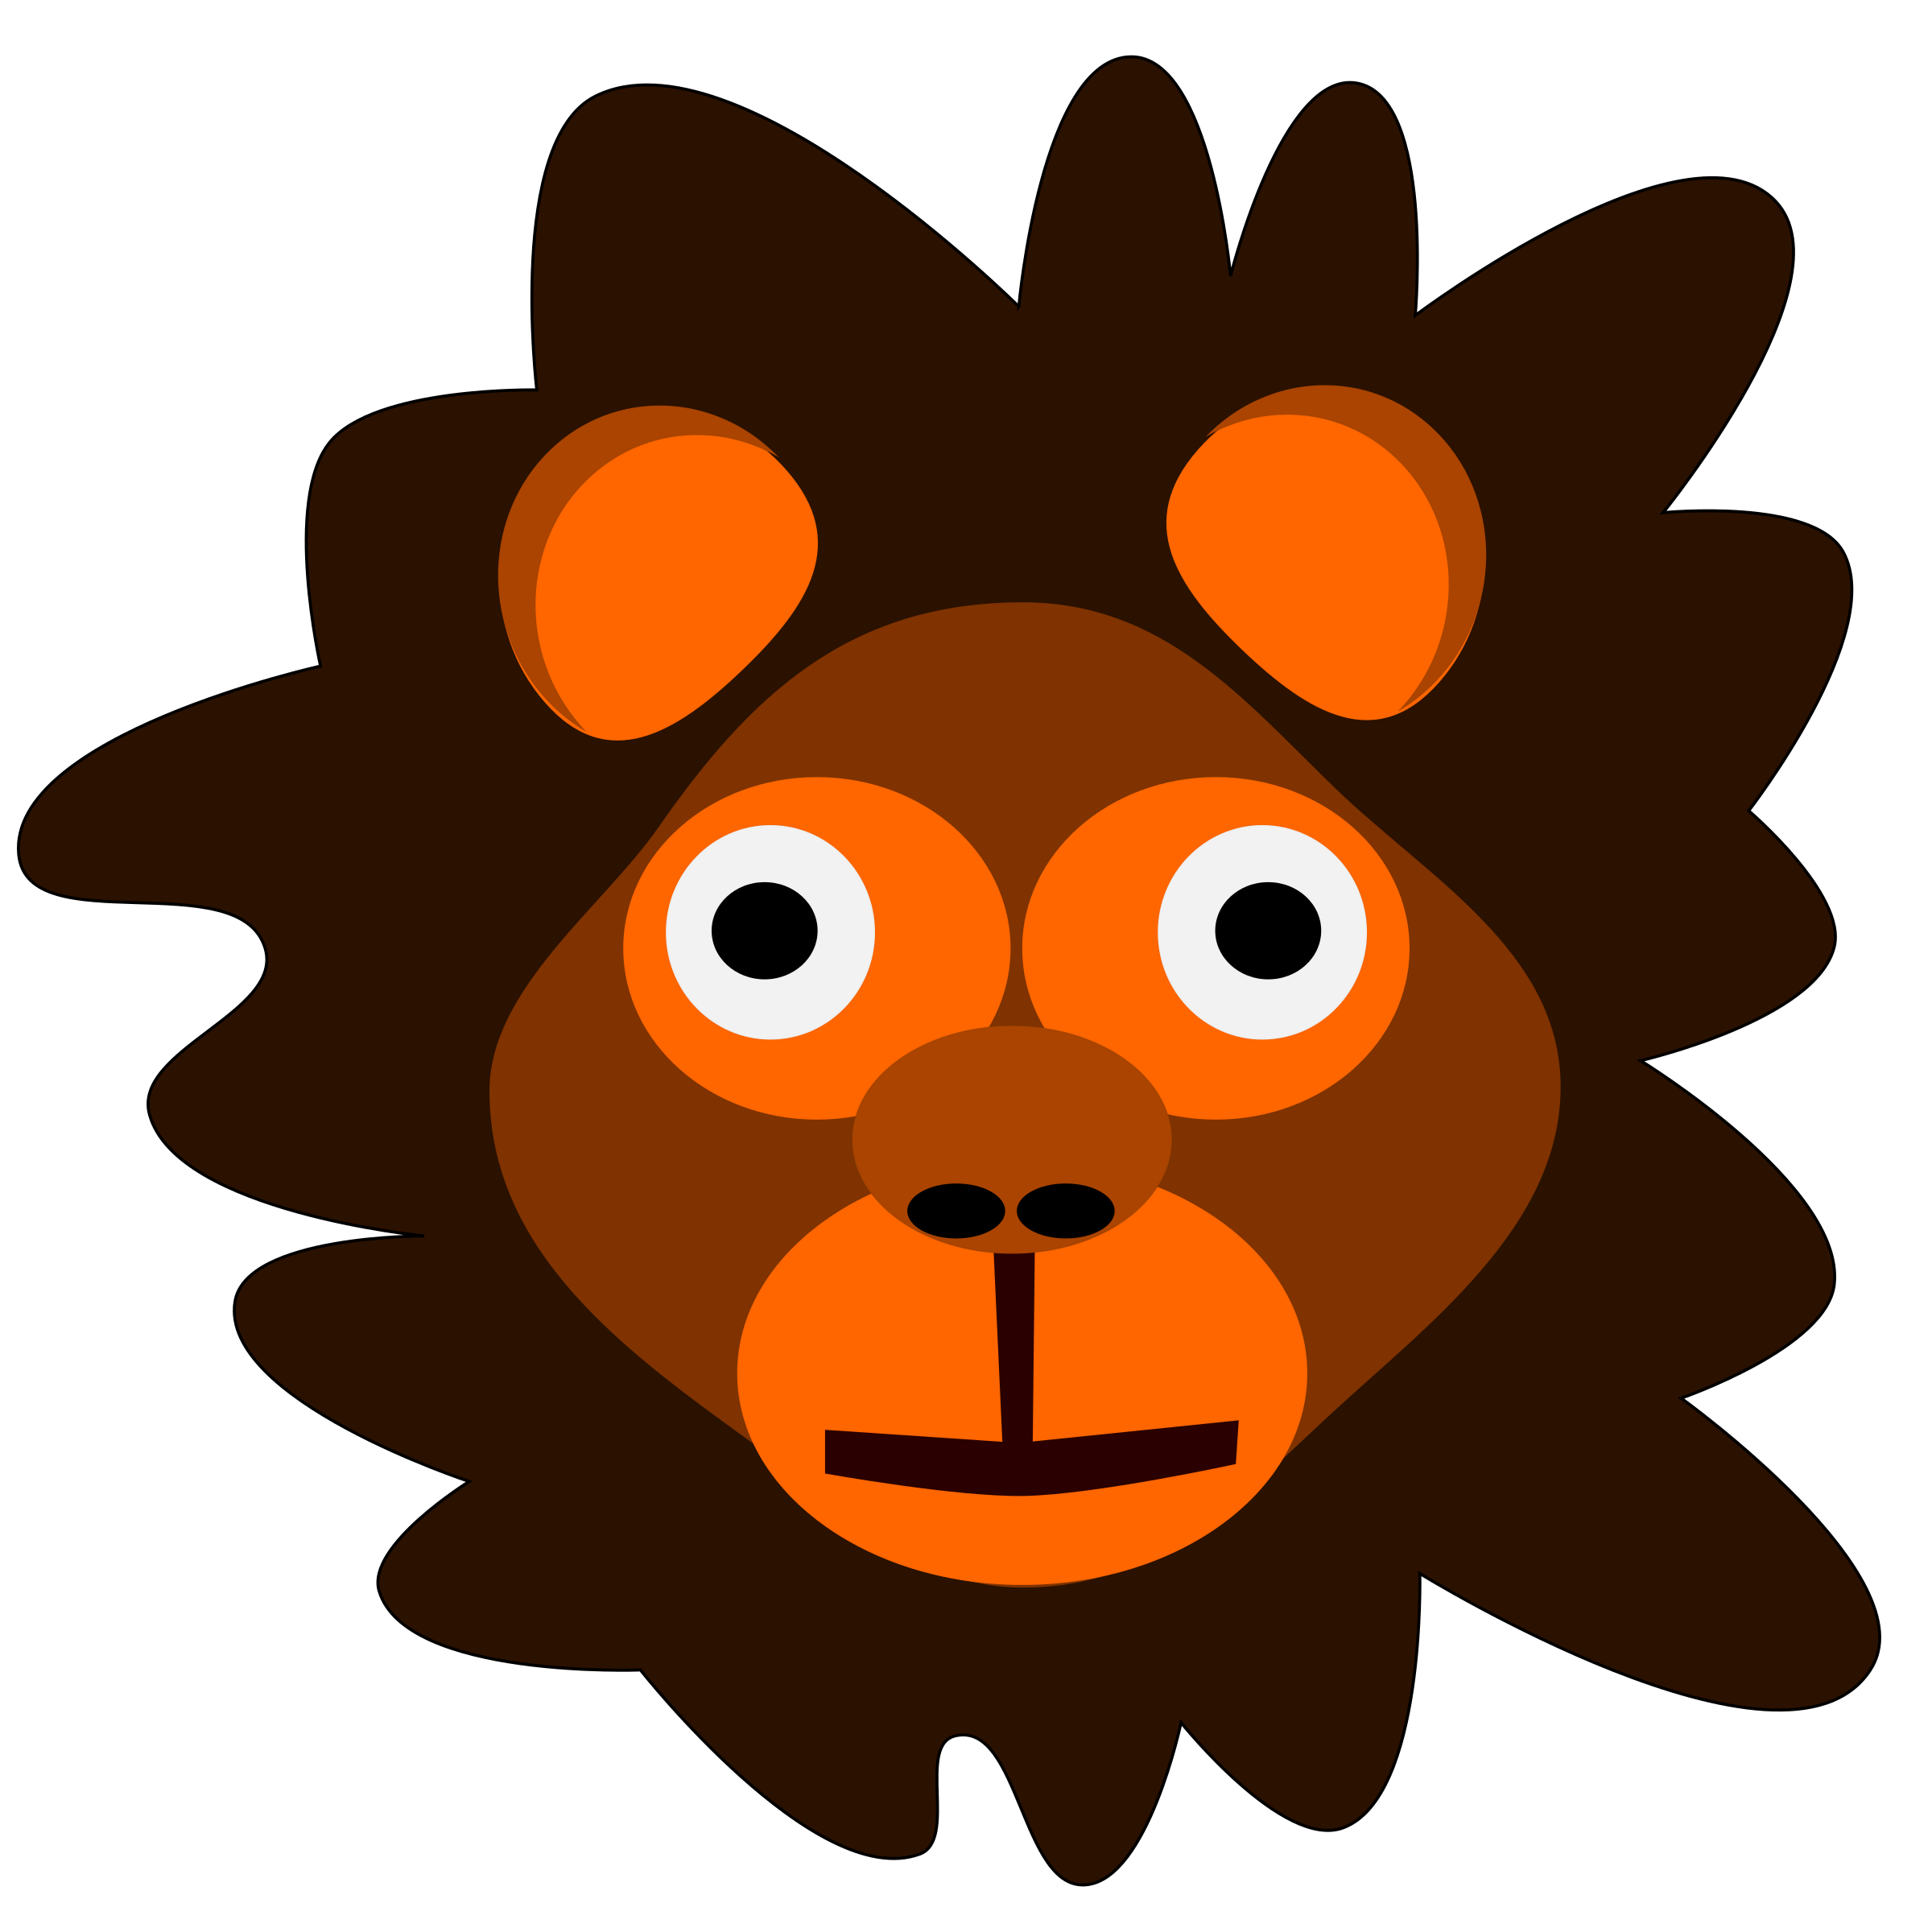 Lion icons png free. Crazy clipart crazy lady